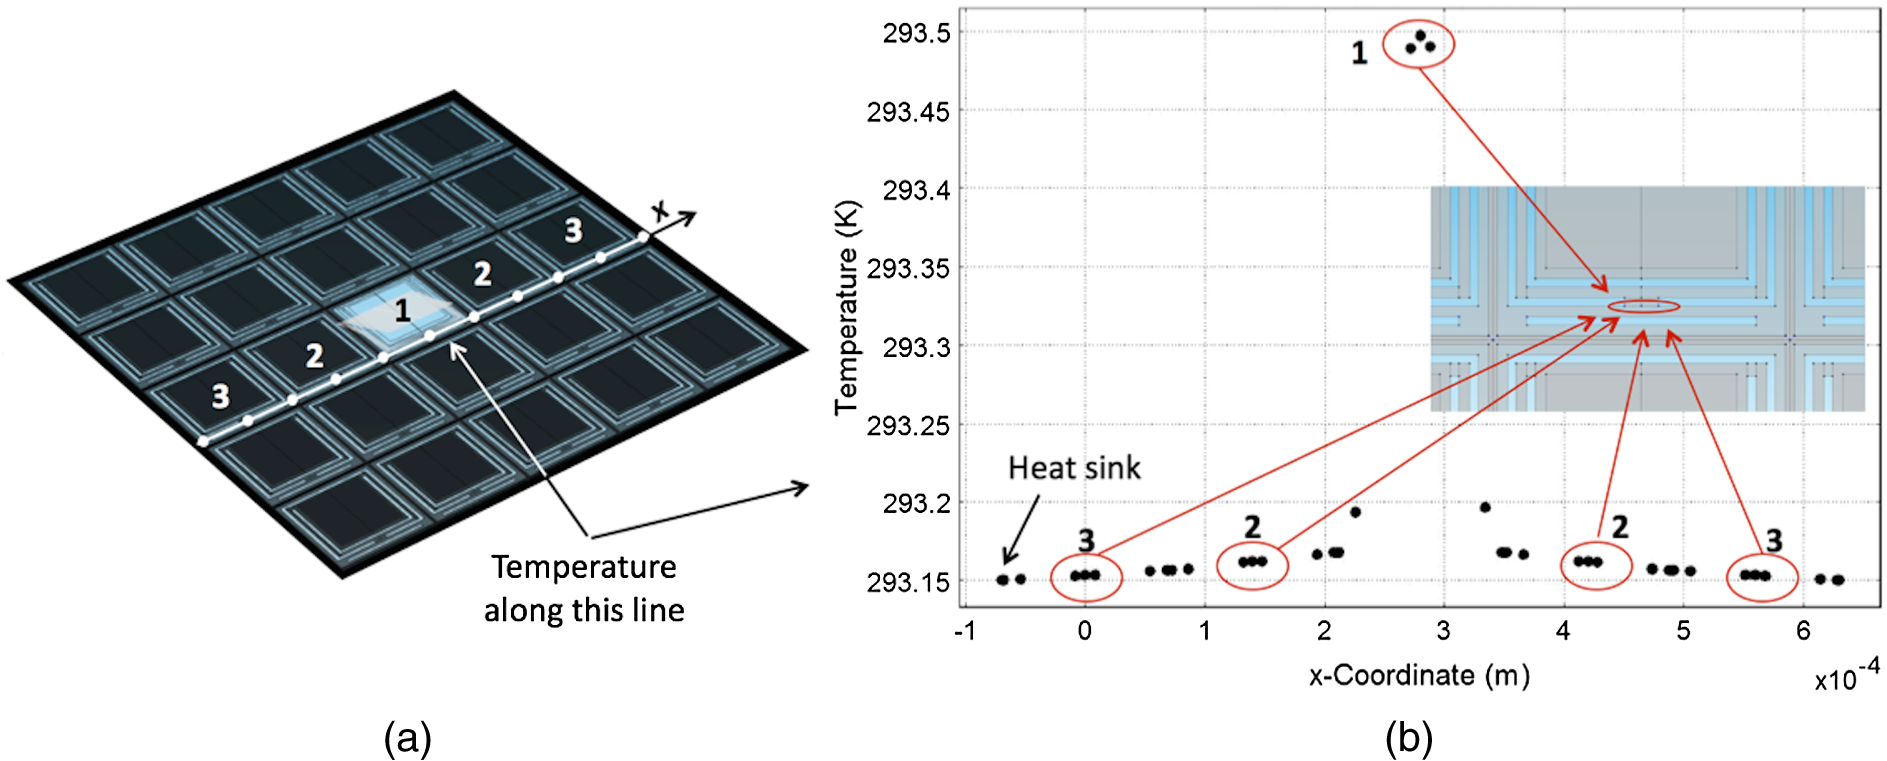 Investigation Of Microelectromechanical Systems Bimaterial Sensors Mosfet Circuits Tutorial Cmos Model Generation And Labview The Surface Tones Indicate Temperature Darklow Brighthigh B Plot Sensor Connecting Points As Indicated By Inset